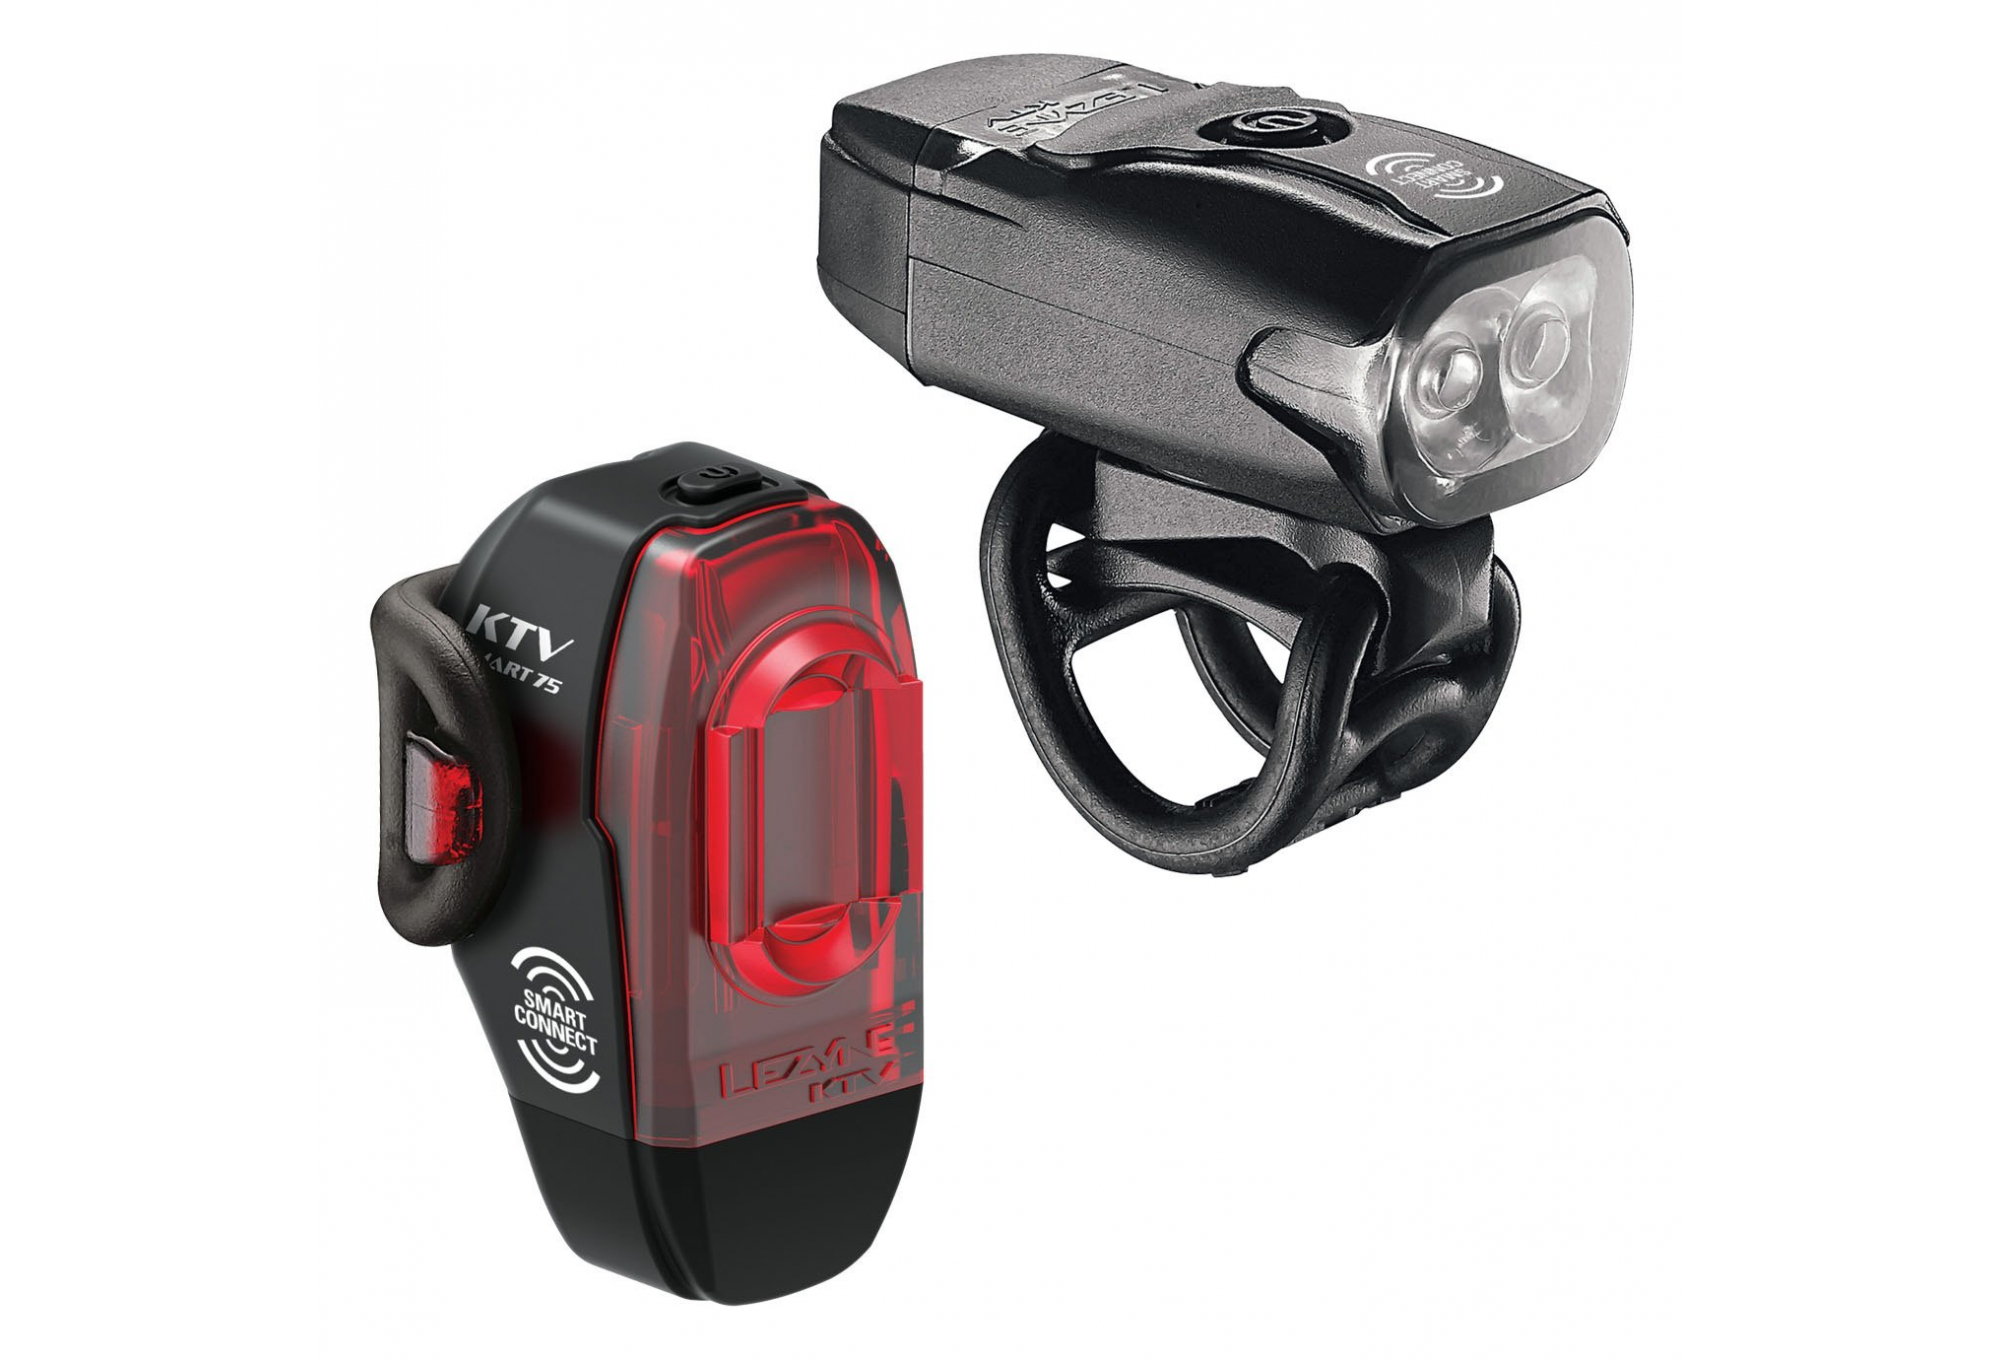 LEZYNE MICRO DRIVE 500XL AND KTV BLACK BICYCLE HEADLIGHT AND TAILLIGHT SET